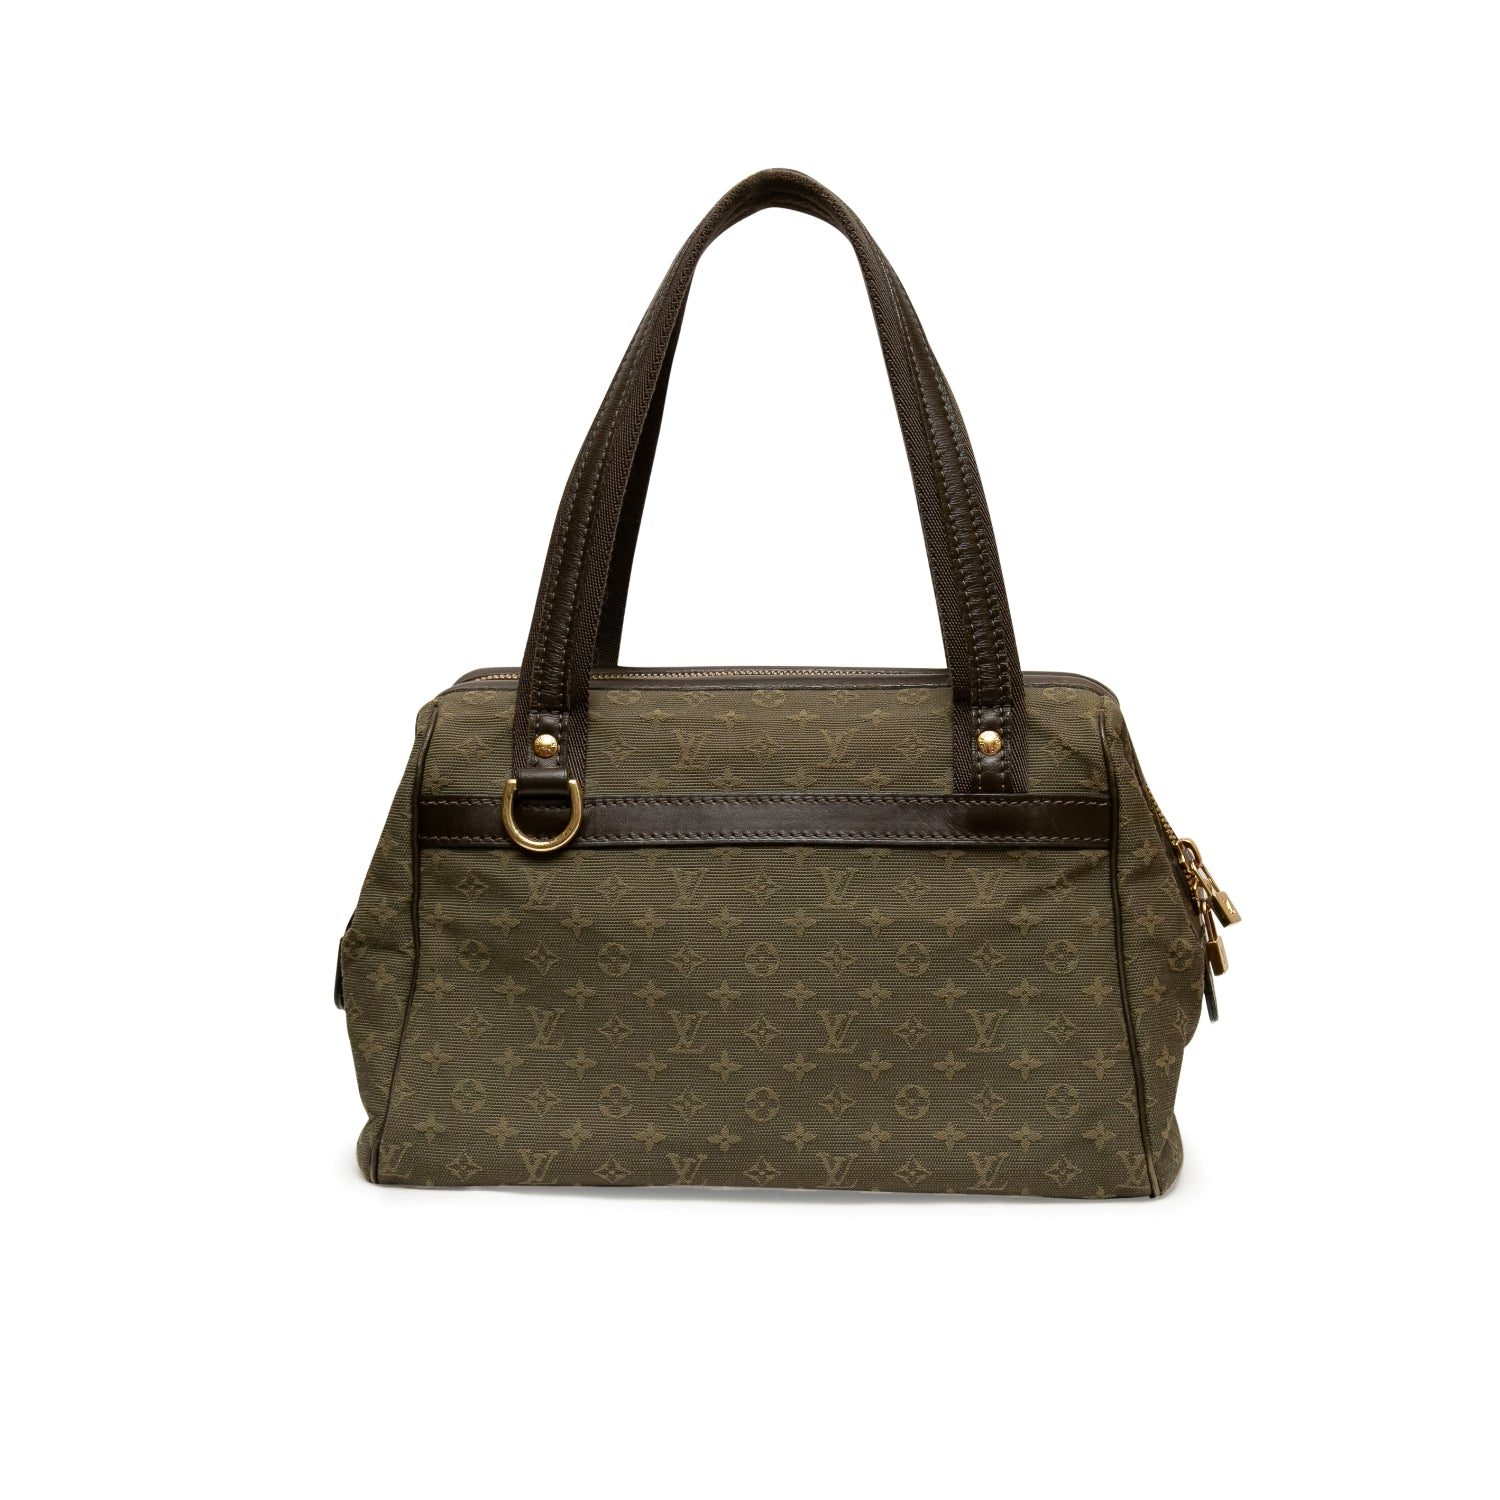 ladiesoflux - Louis Vuitton Monogram Mini Lin Josephine Bag - Ladies Of Lux - Handbag